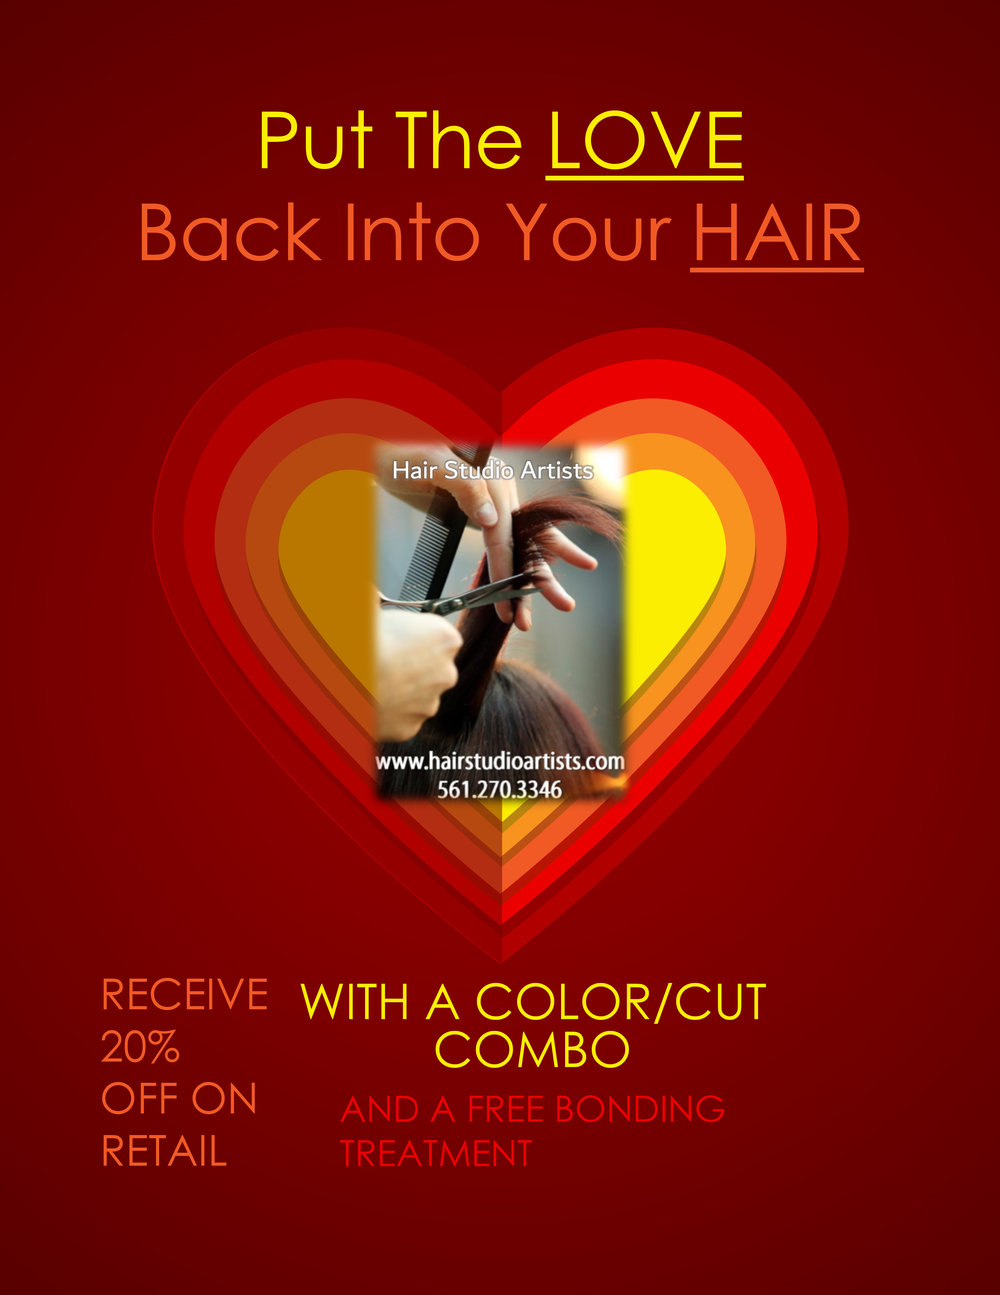 HAIR STUDIO ARTISTS  - Receive 20% Off Retail with a color/cut combo and a free bonding treatment.